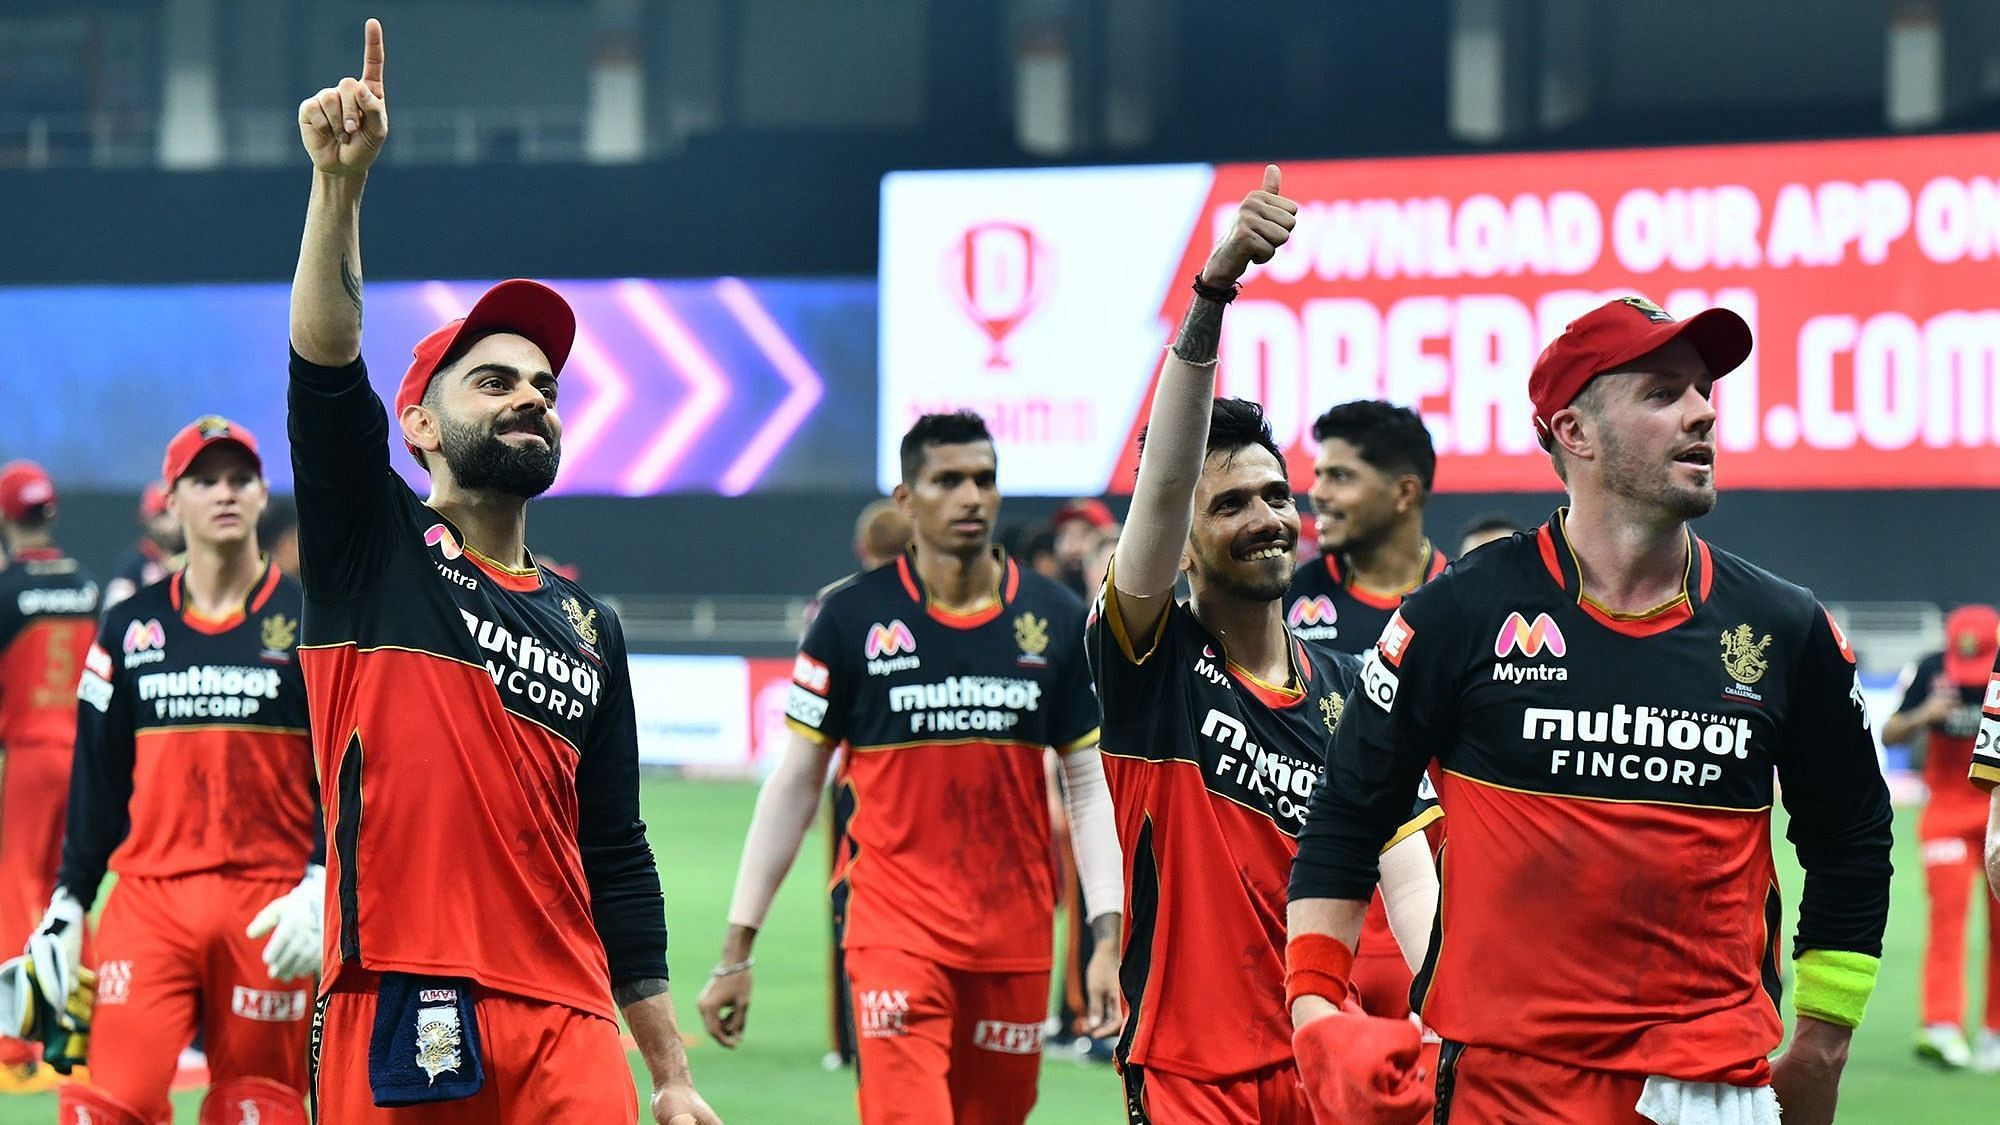 Royal Challengers Bangalore beat Kolkata Knight Riders by 8 wickets